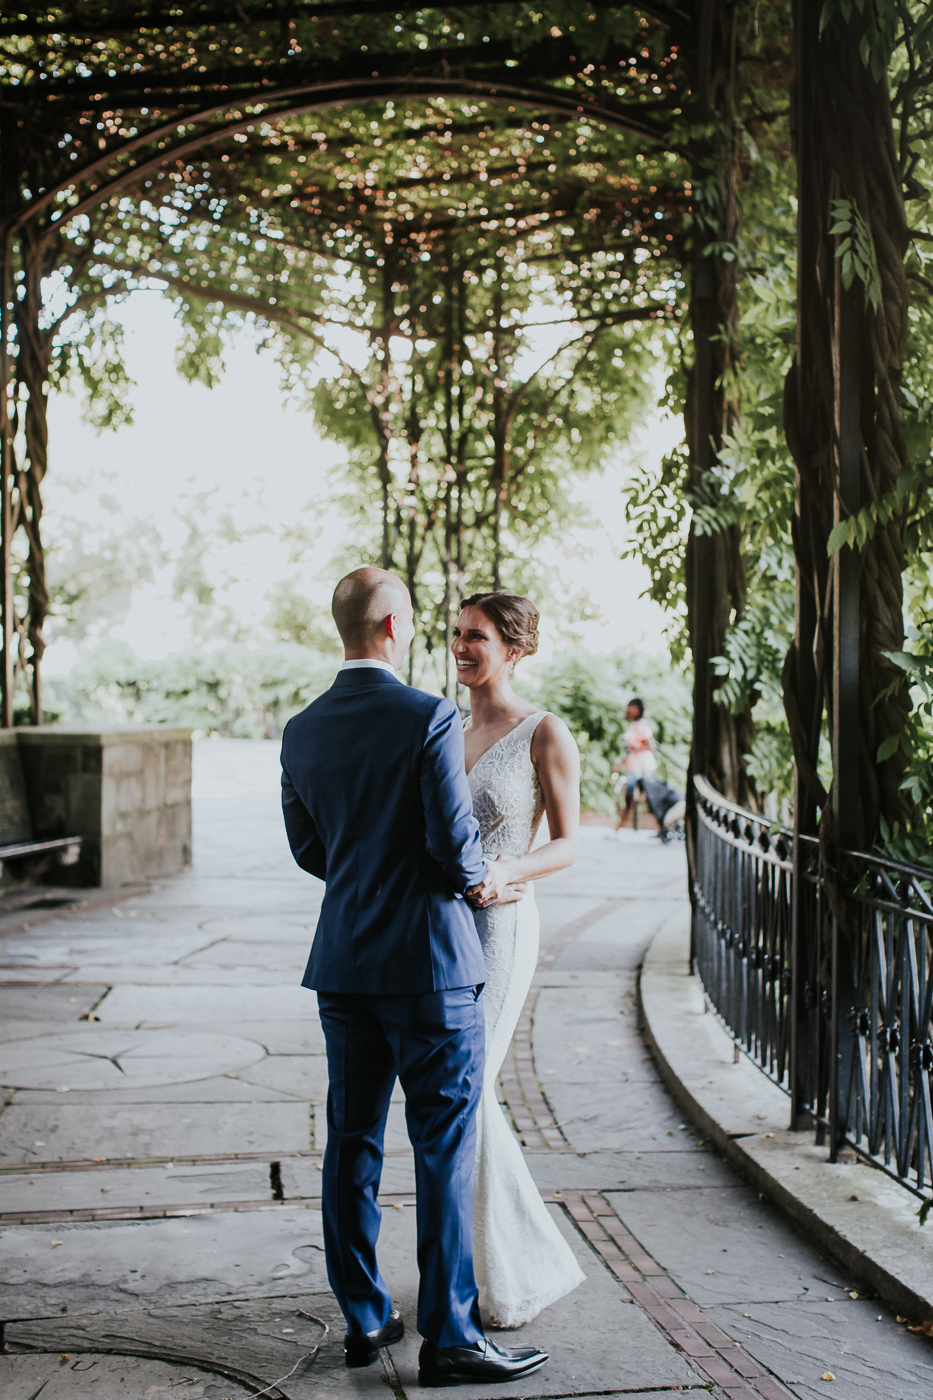 NYC-Central-Park-Conservatory-Garden-Intimate-Elopement-Documentary-Wedding-Photographer-29.jpg